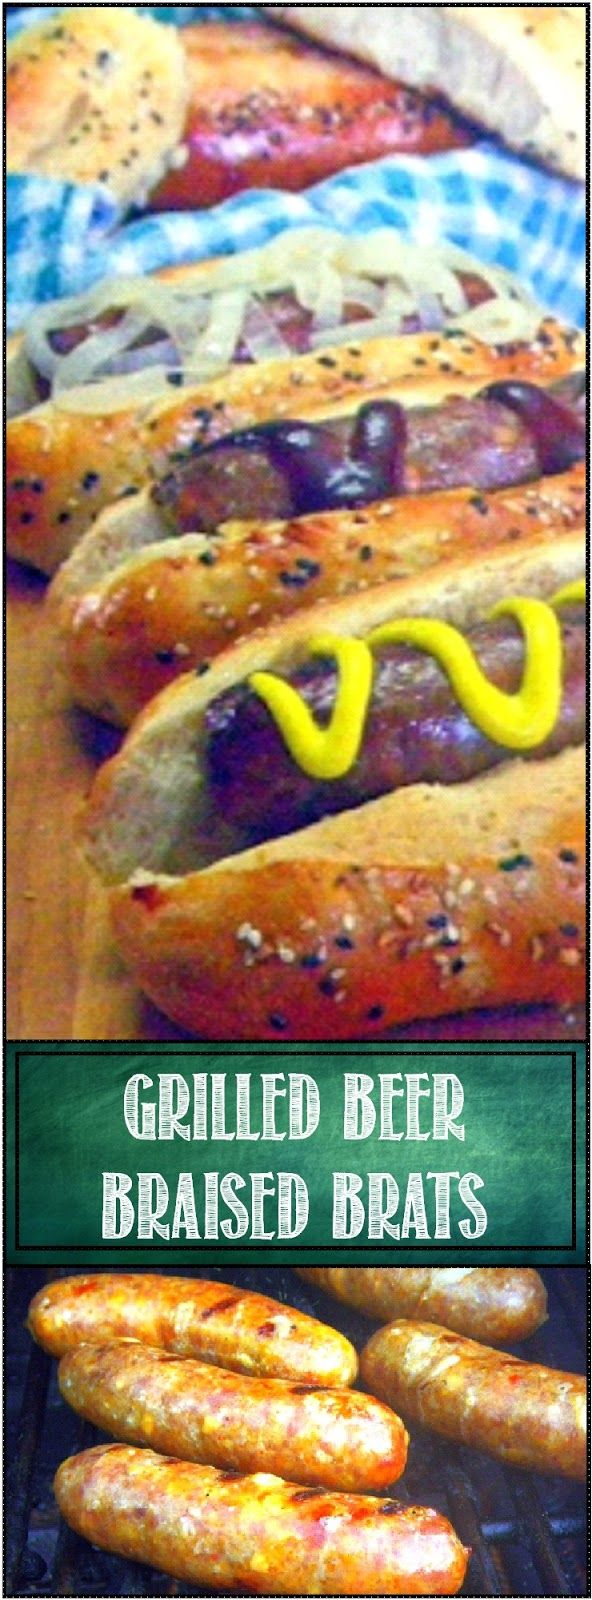 Grilled Beer Braised Brats... This is one of those pins that everyone will need at some point. Grilling brats the right way is more than just slapping 'em on some heat and letting go... Prick em, soak em... Love your meat and your meat will love you back!